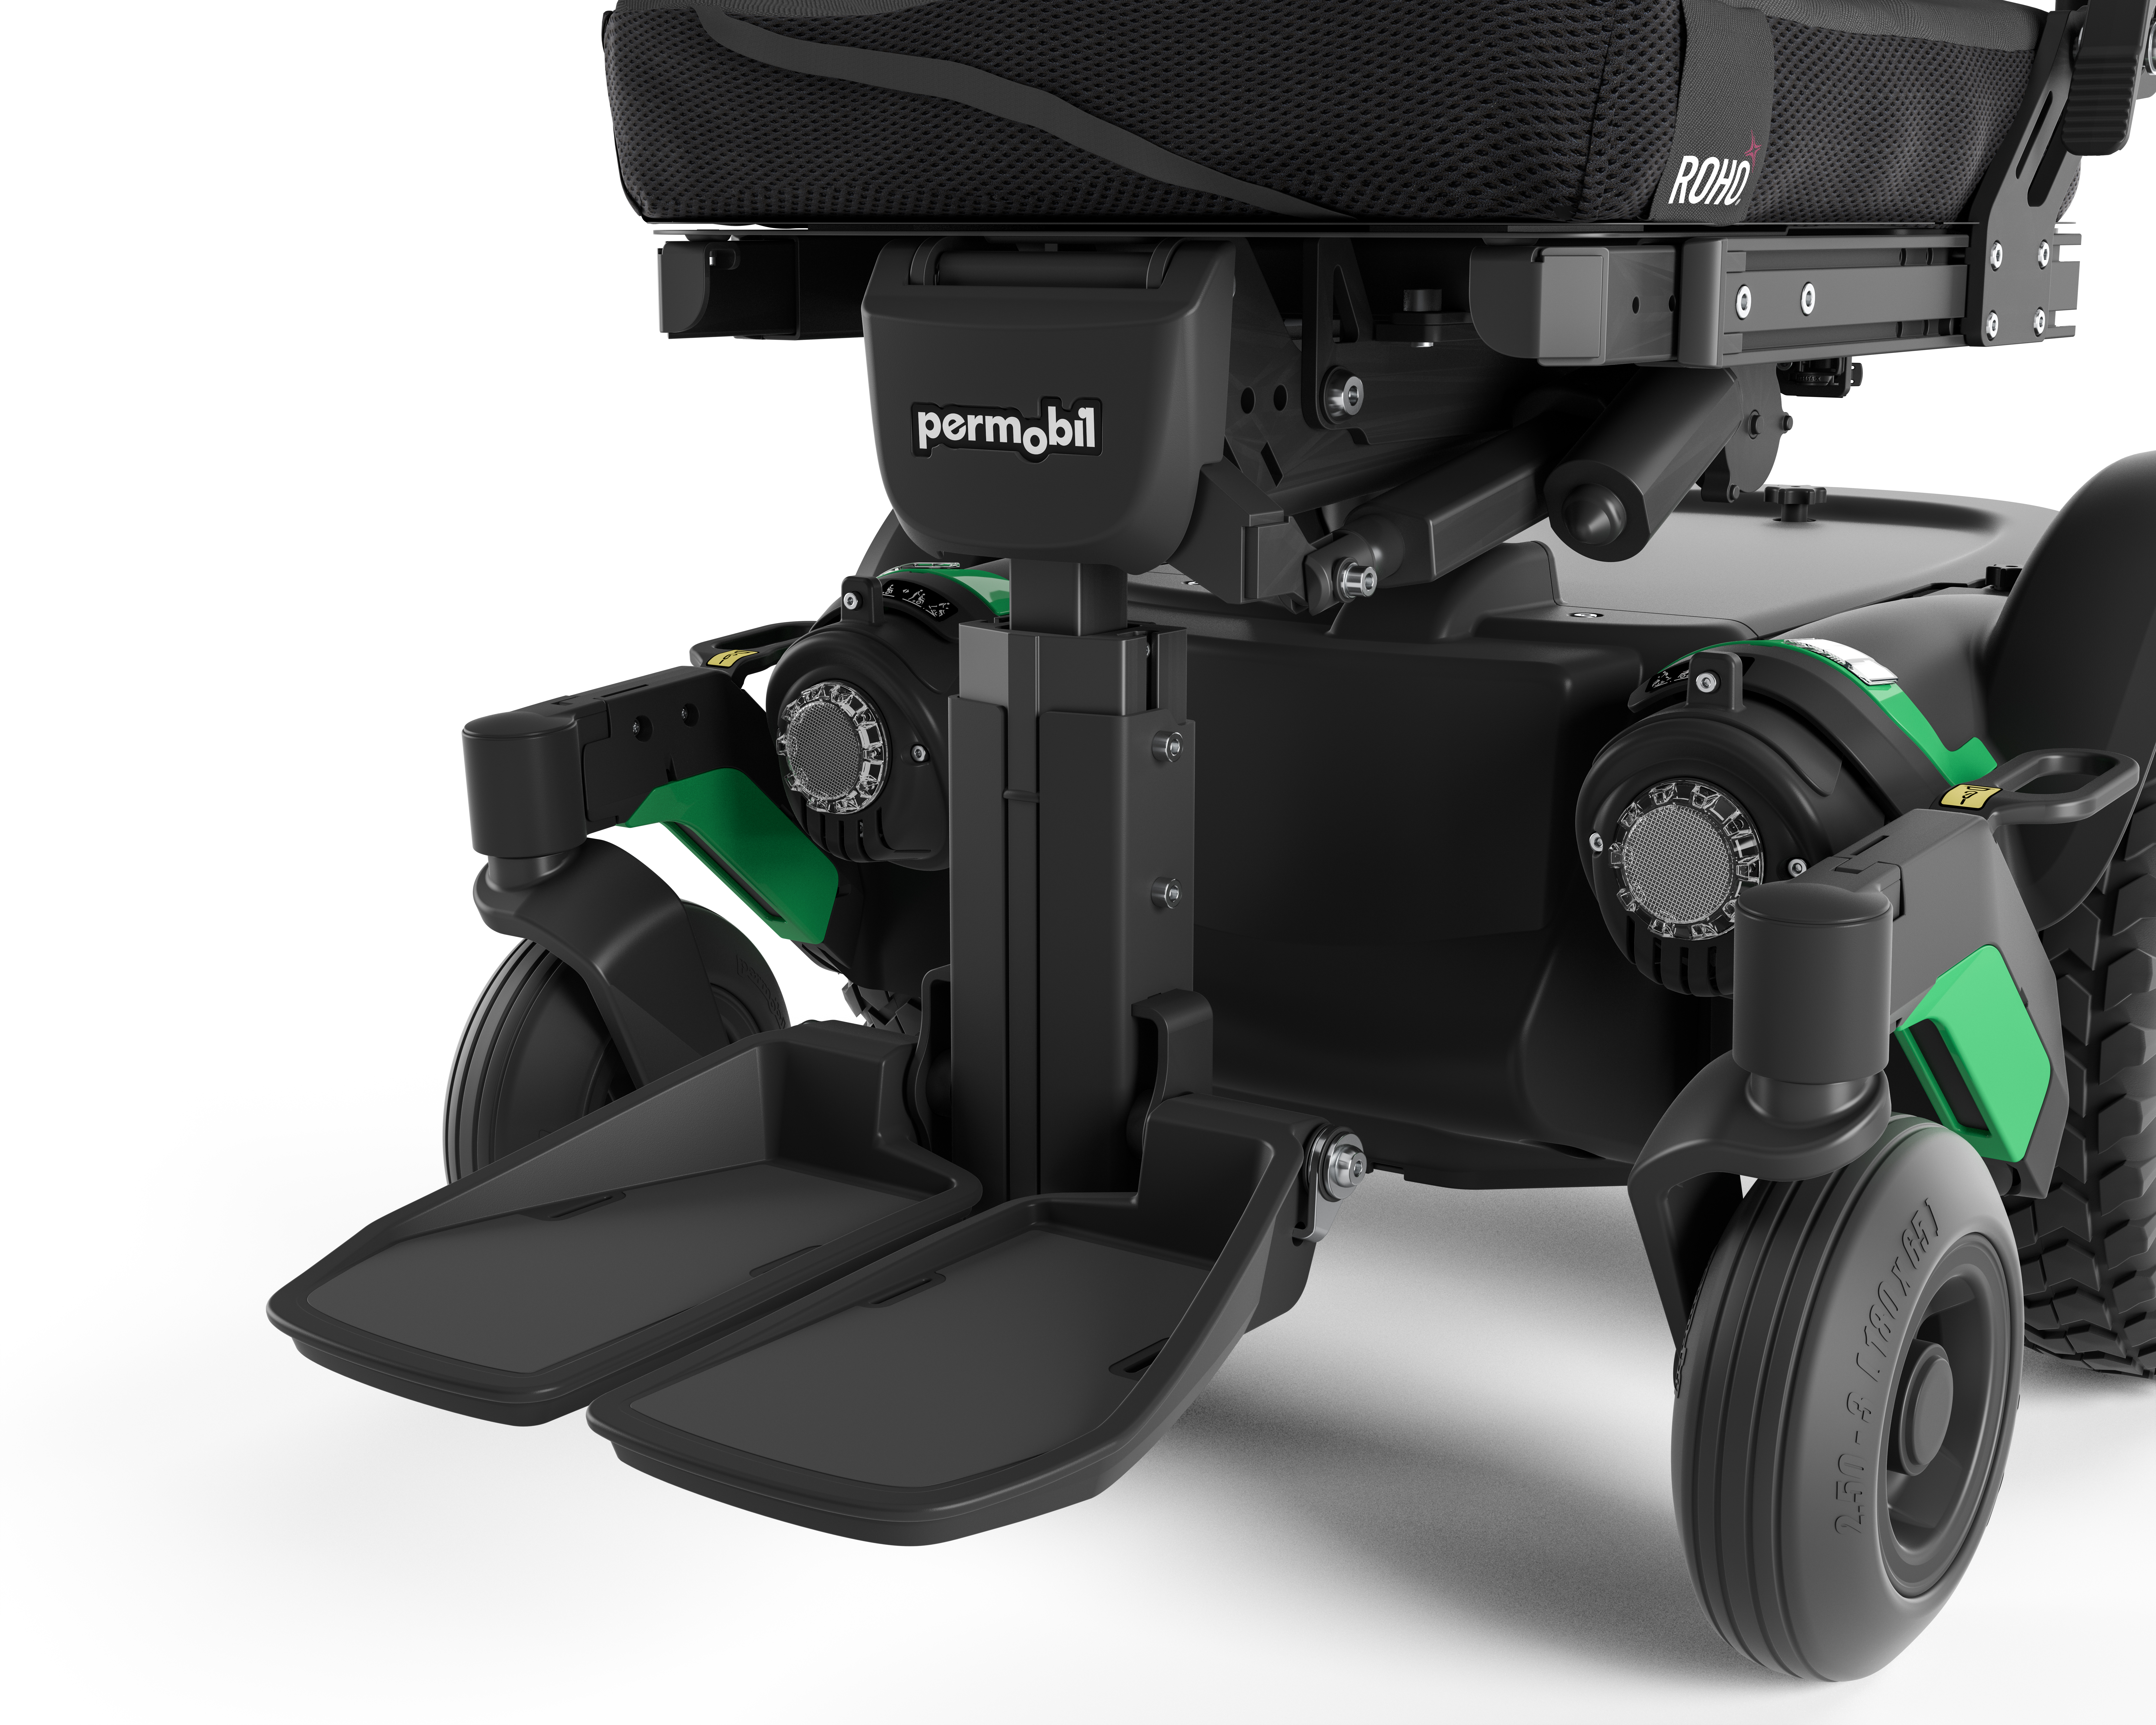 Permobil M1 Mid-Front lower part of the power wheelchair.